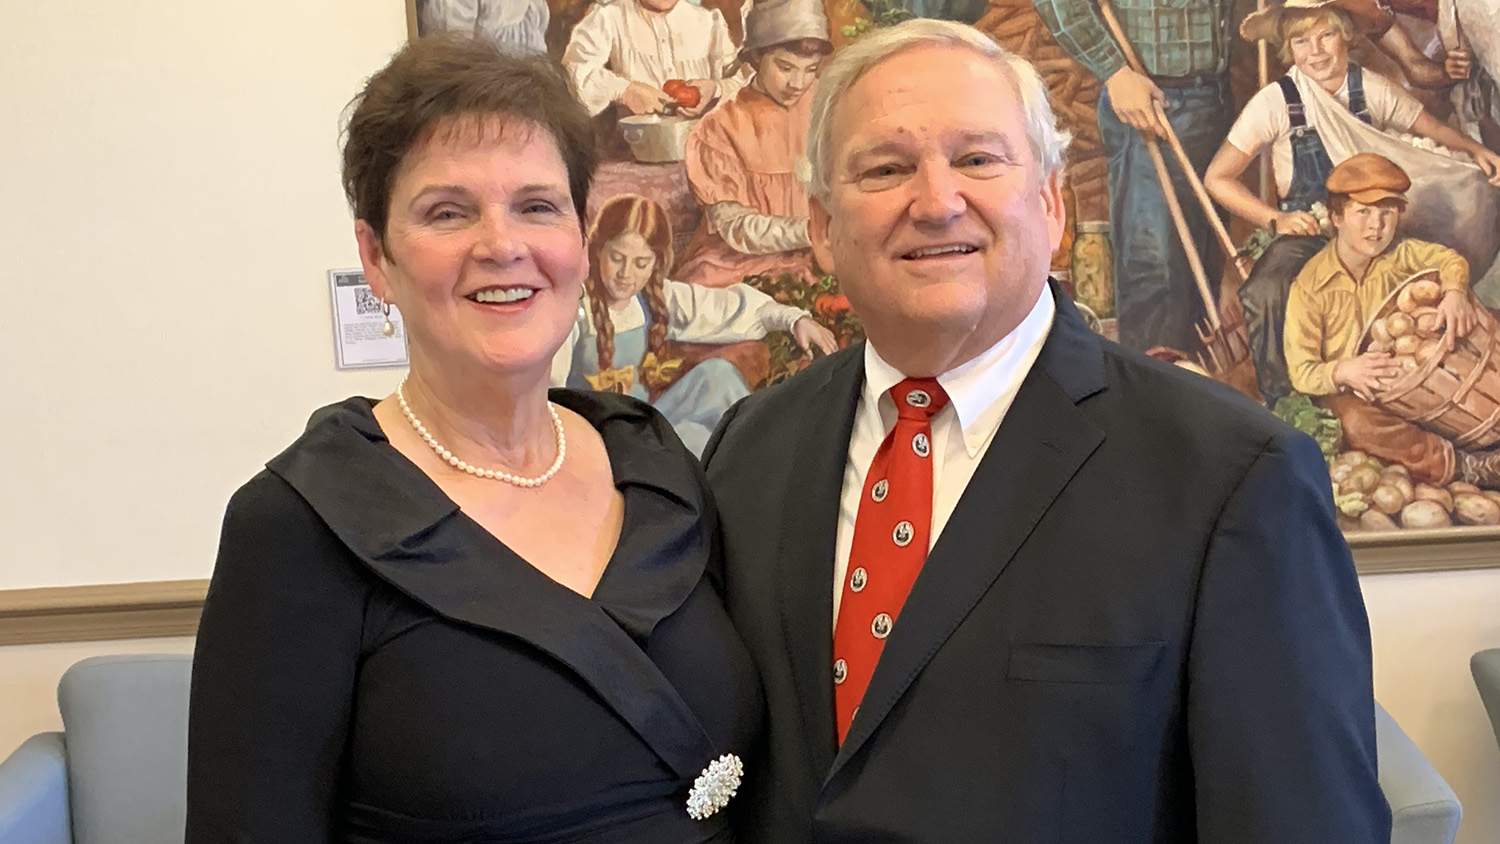 Photo of Sharon Rowland and Mike Davis